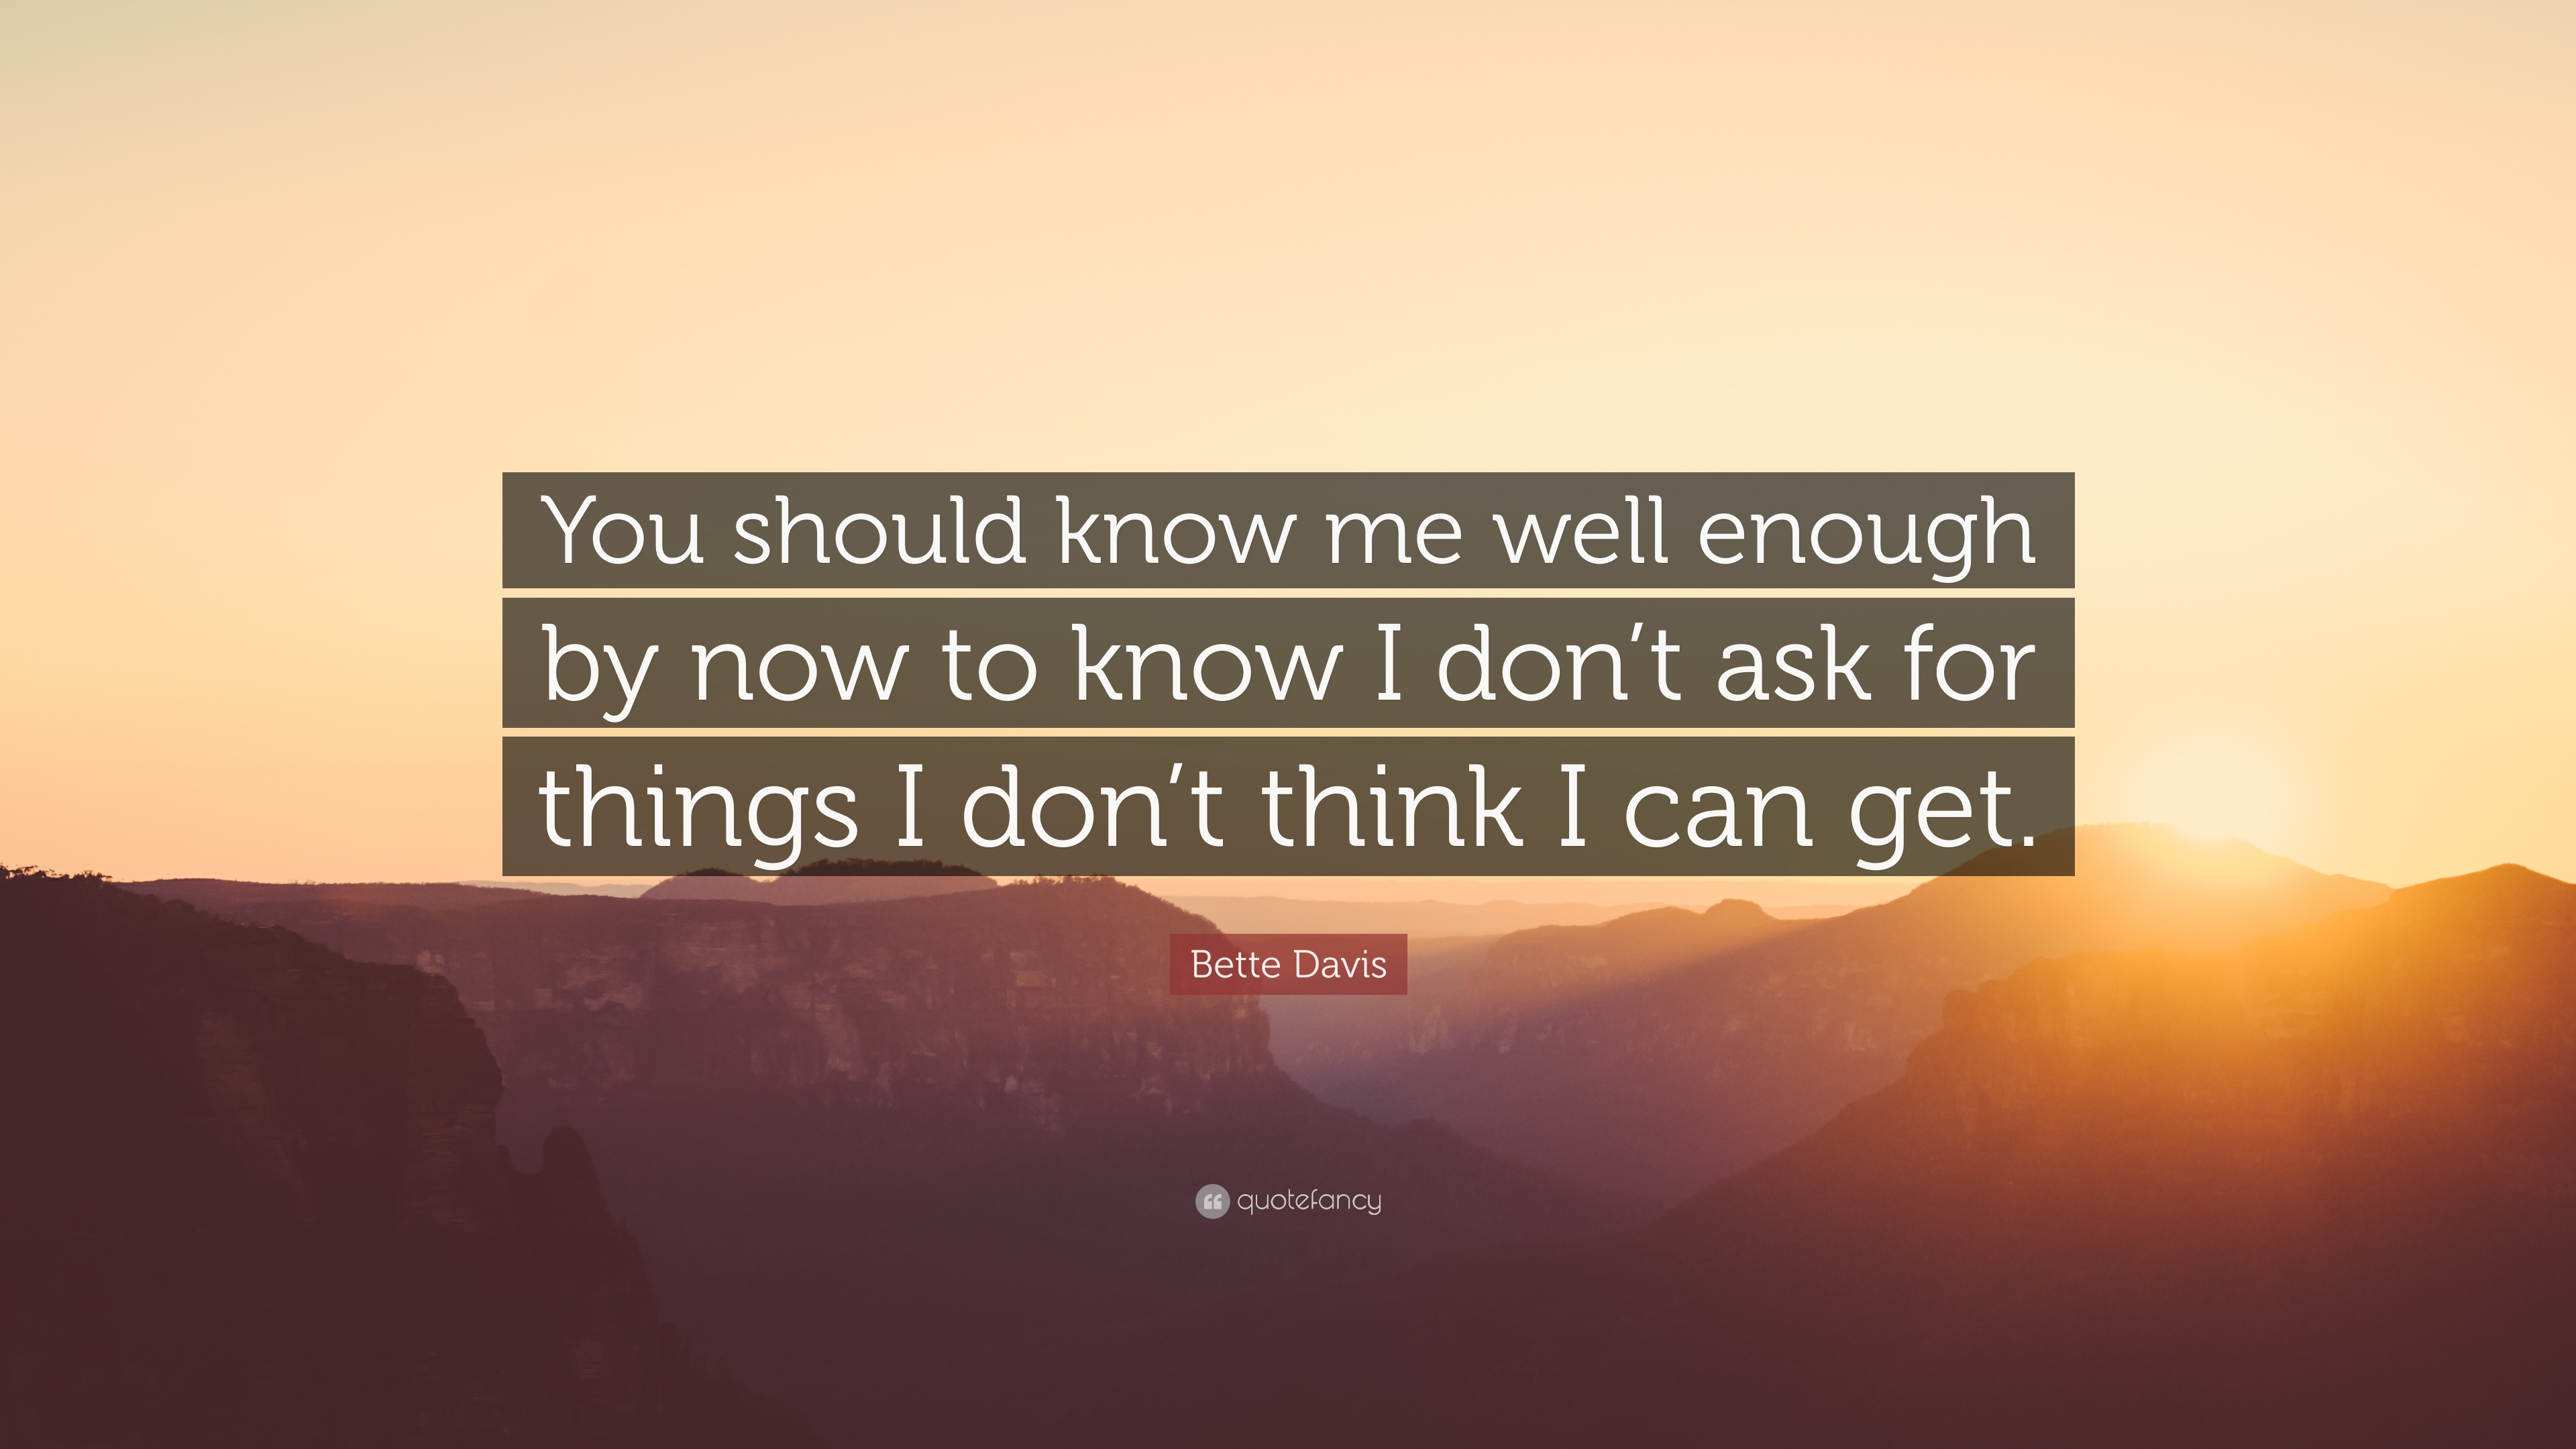 Bette Davis Quote You Should Know Me Well Enough By Now To Know I